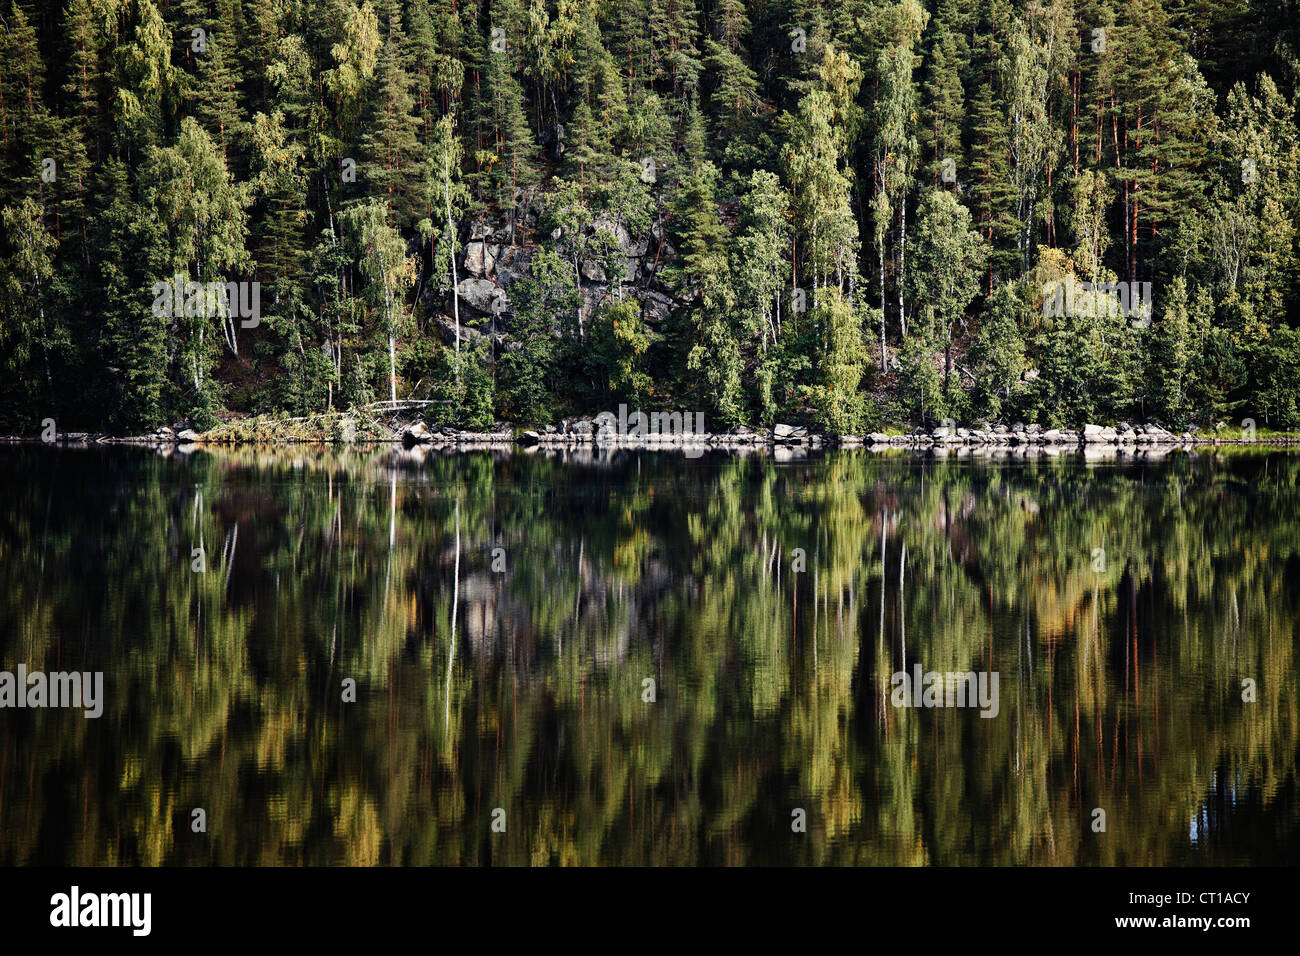 Forest reflected in still lake - Stock Image